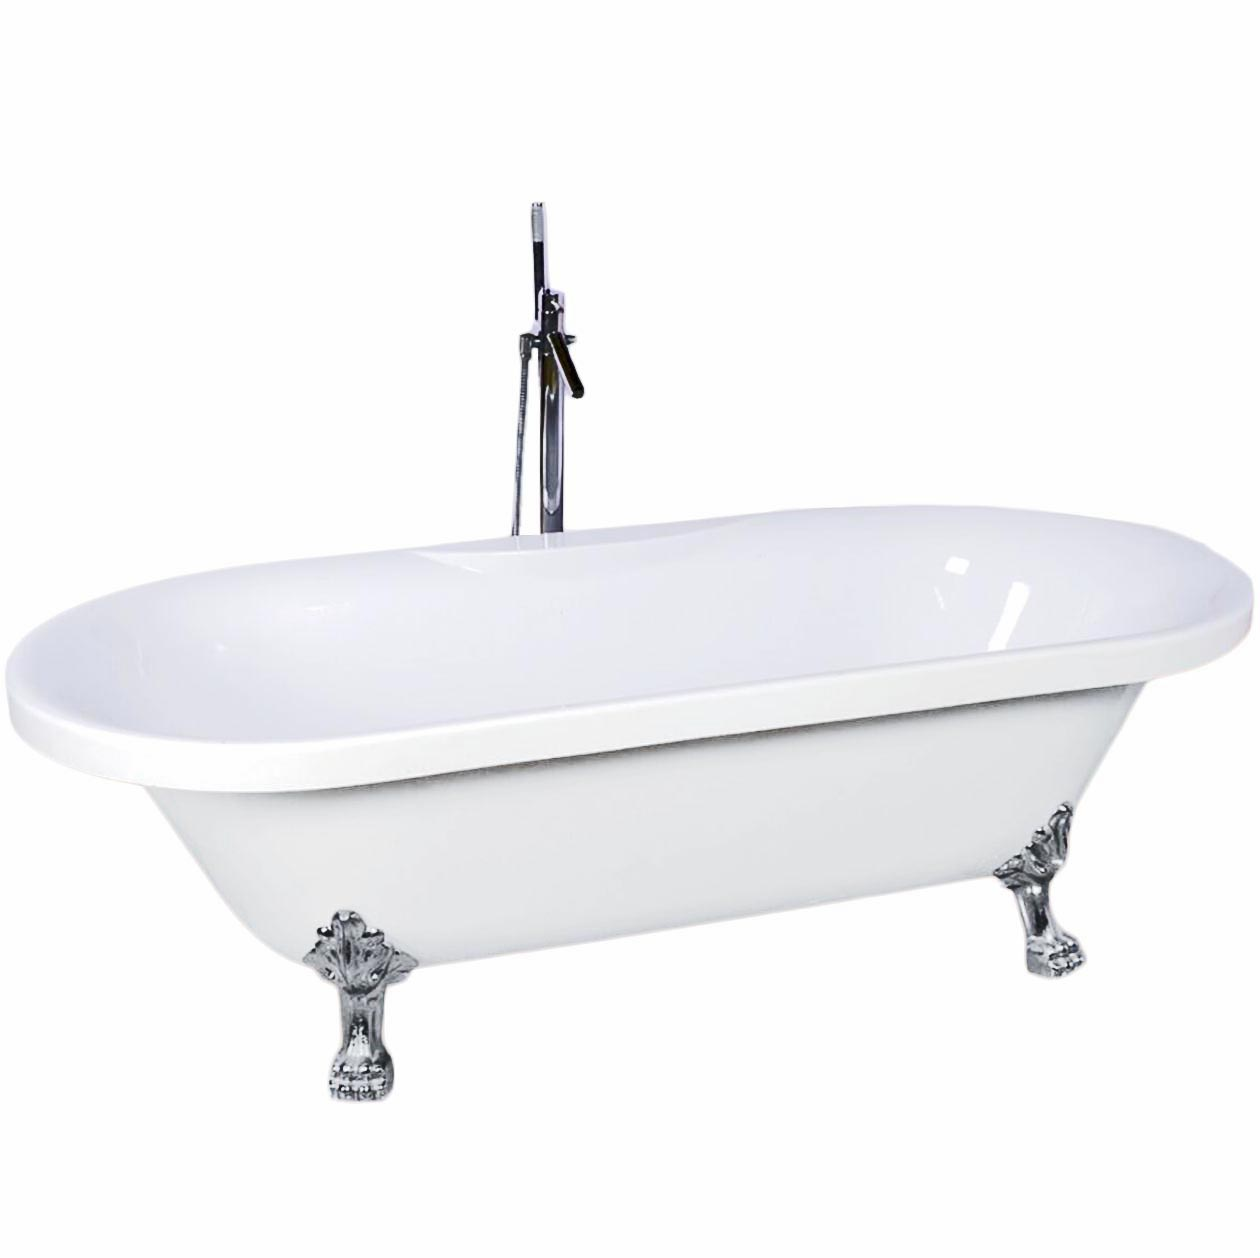 Acrylic Freestanding Bathtub With Four Legs Buy Freestanding Bathtub Retro Bathtub Bathtubs With Jets Product On Alibaba Com